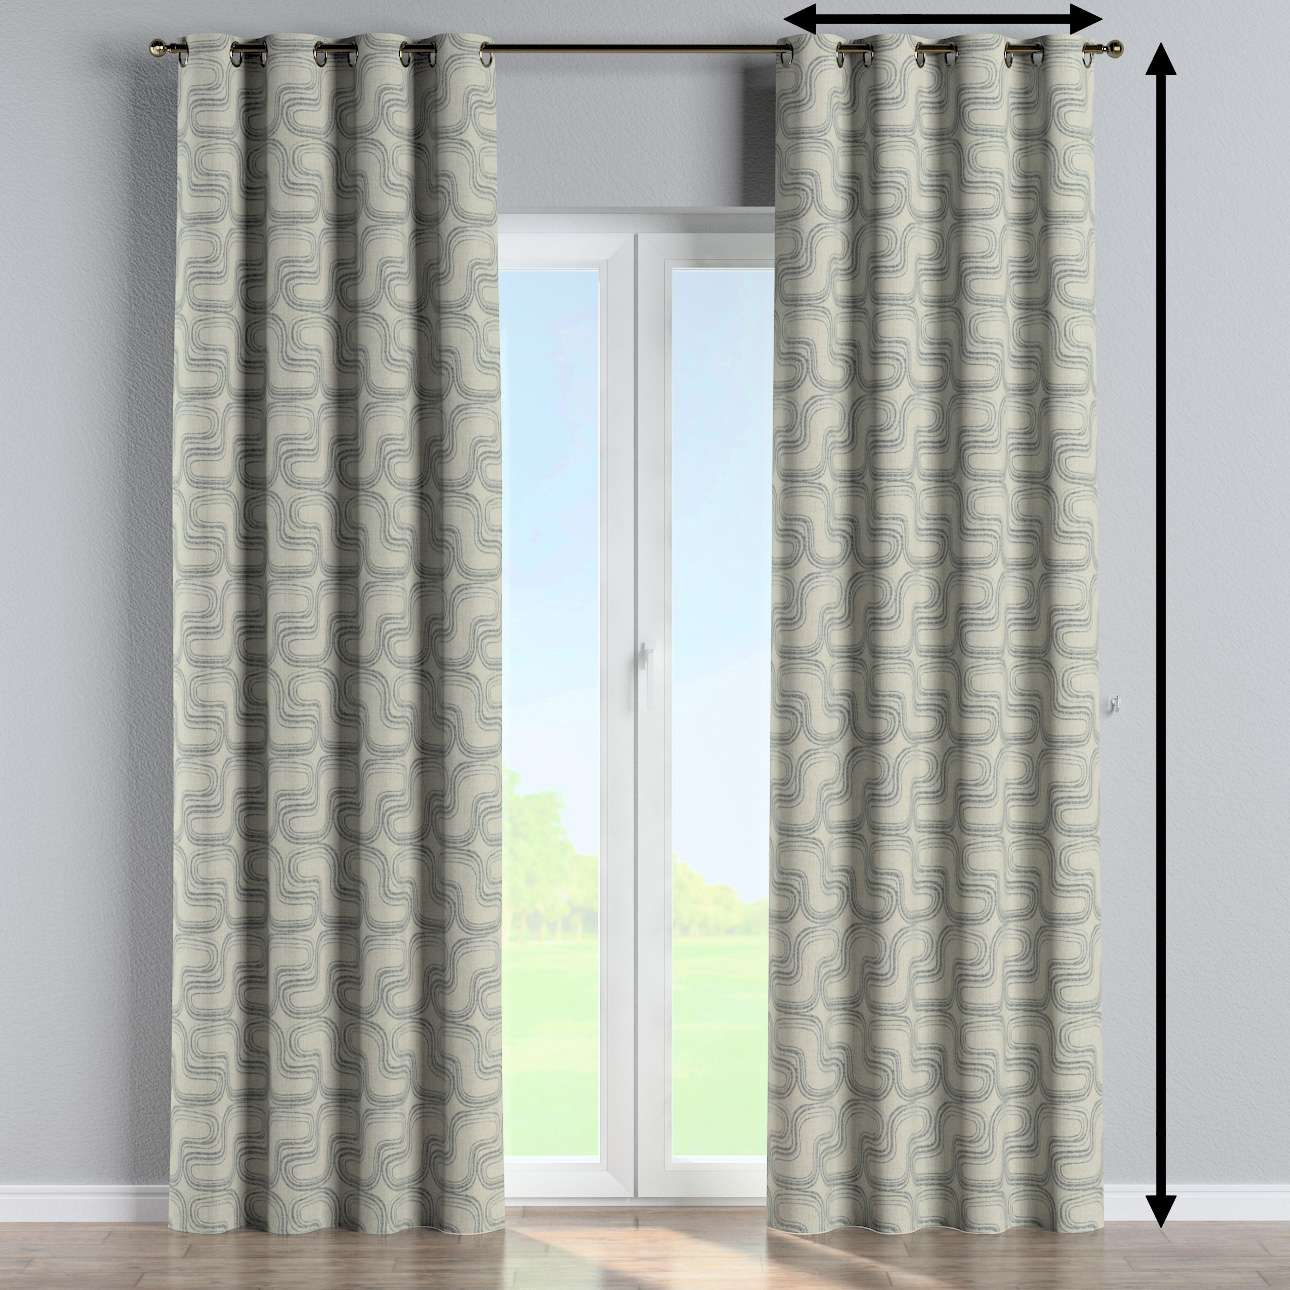 Eyelet curtain in collection Comics/Geometrical, fabric: 143-14